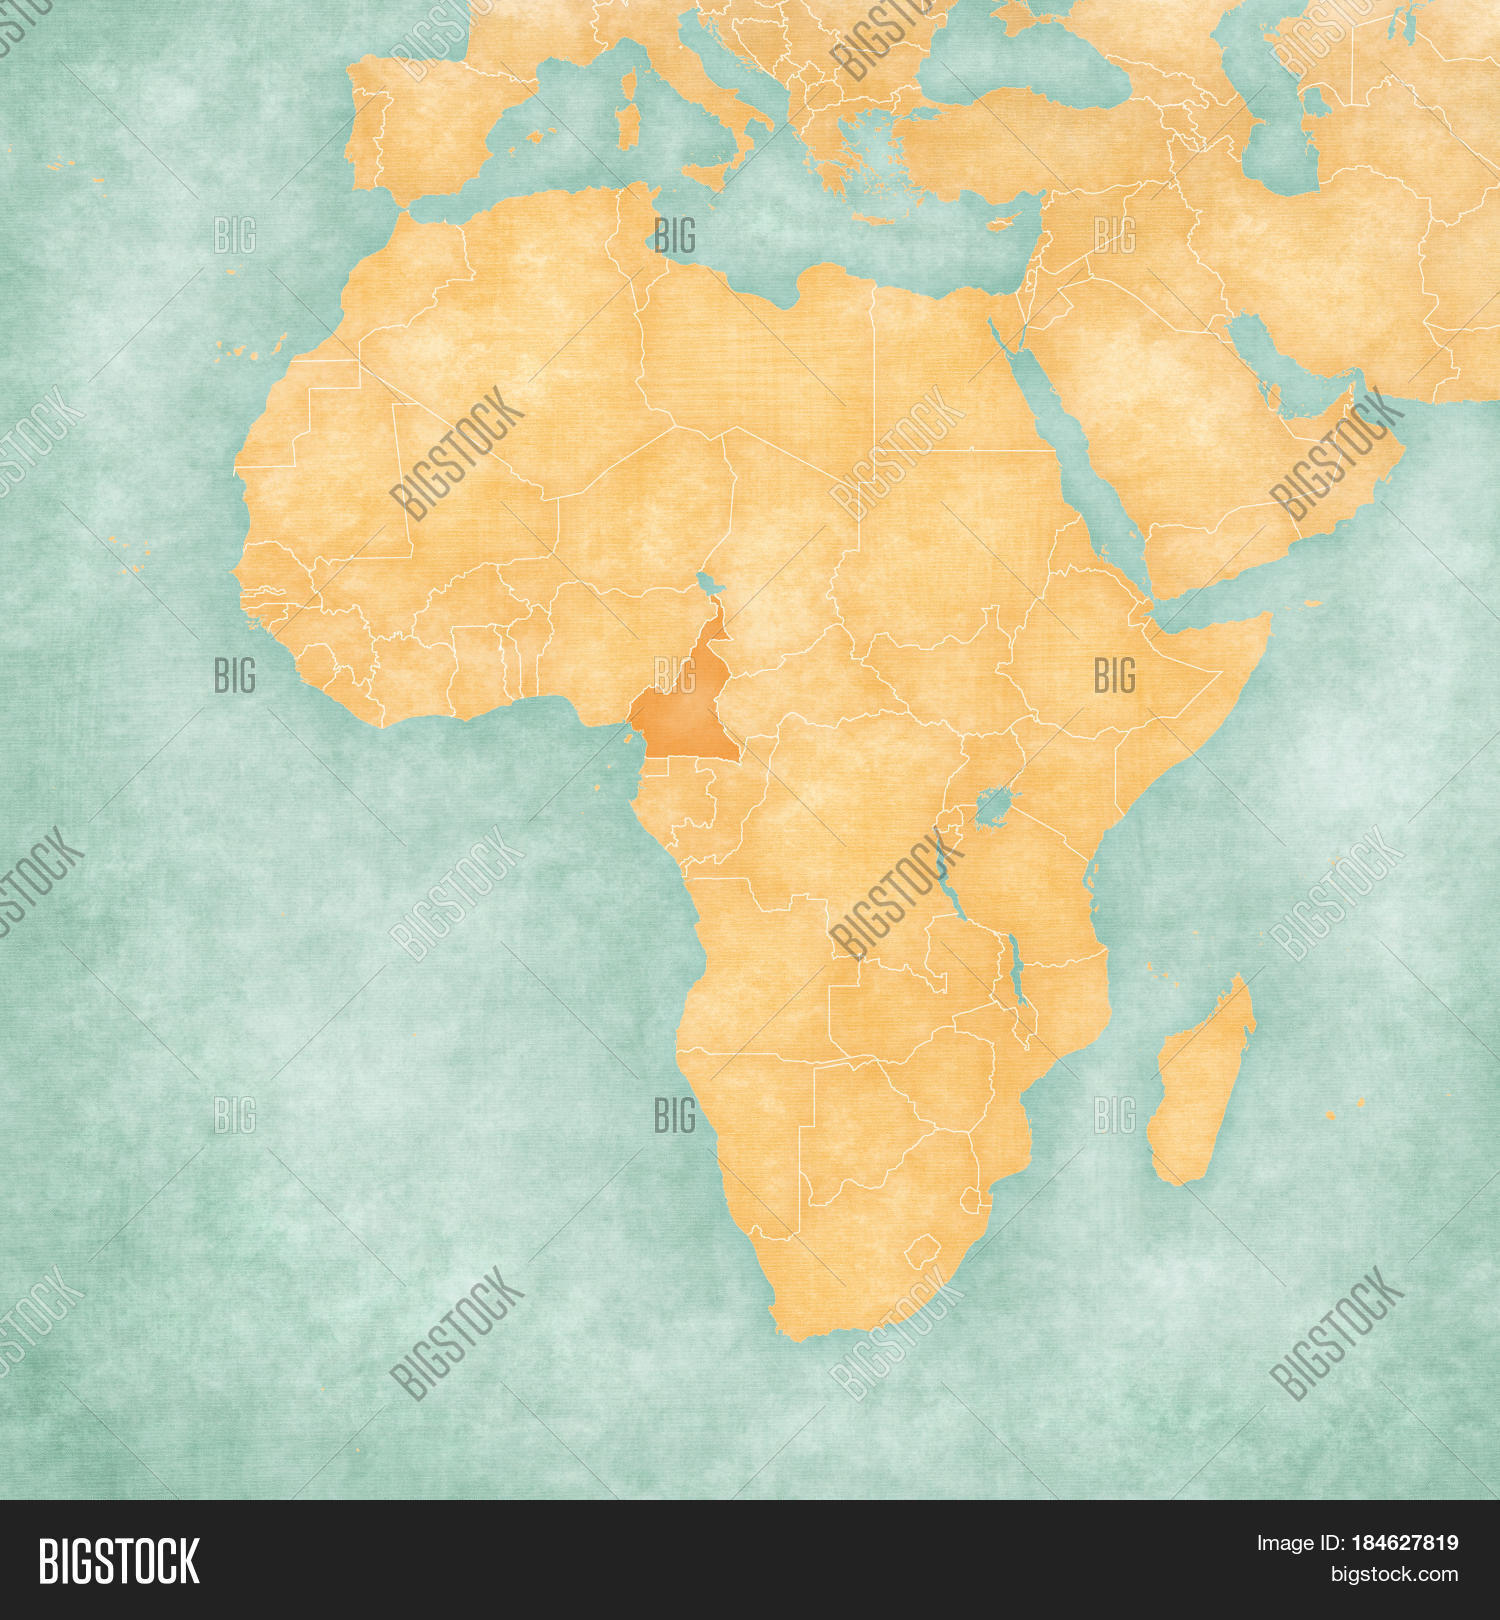 Map Africa - Cameroon Image & Photo (Free Trial)   Bigstock